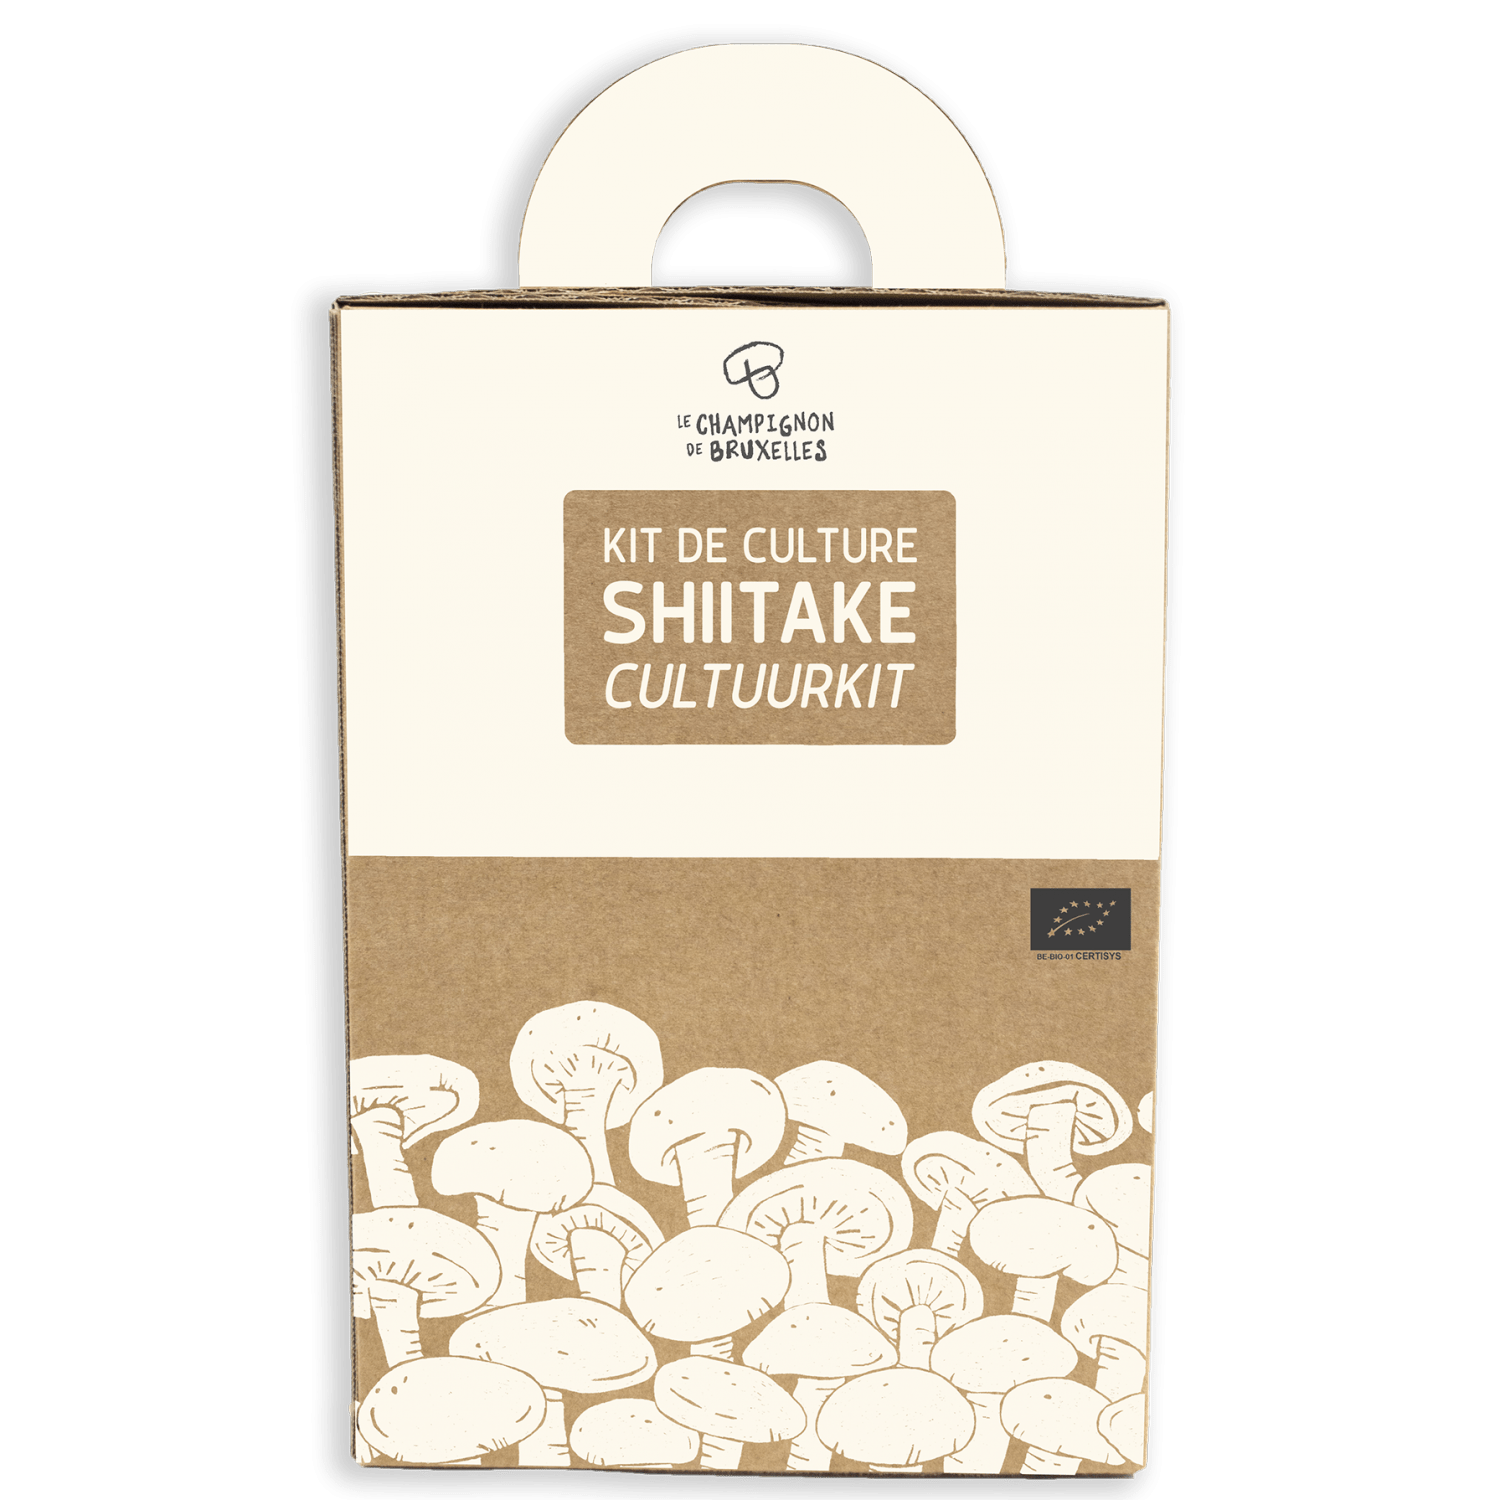 Shiitake growing kit